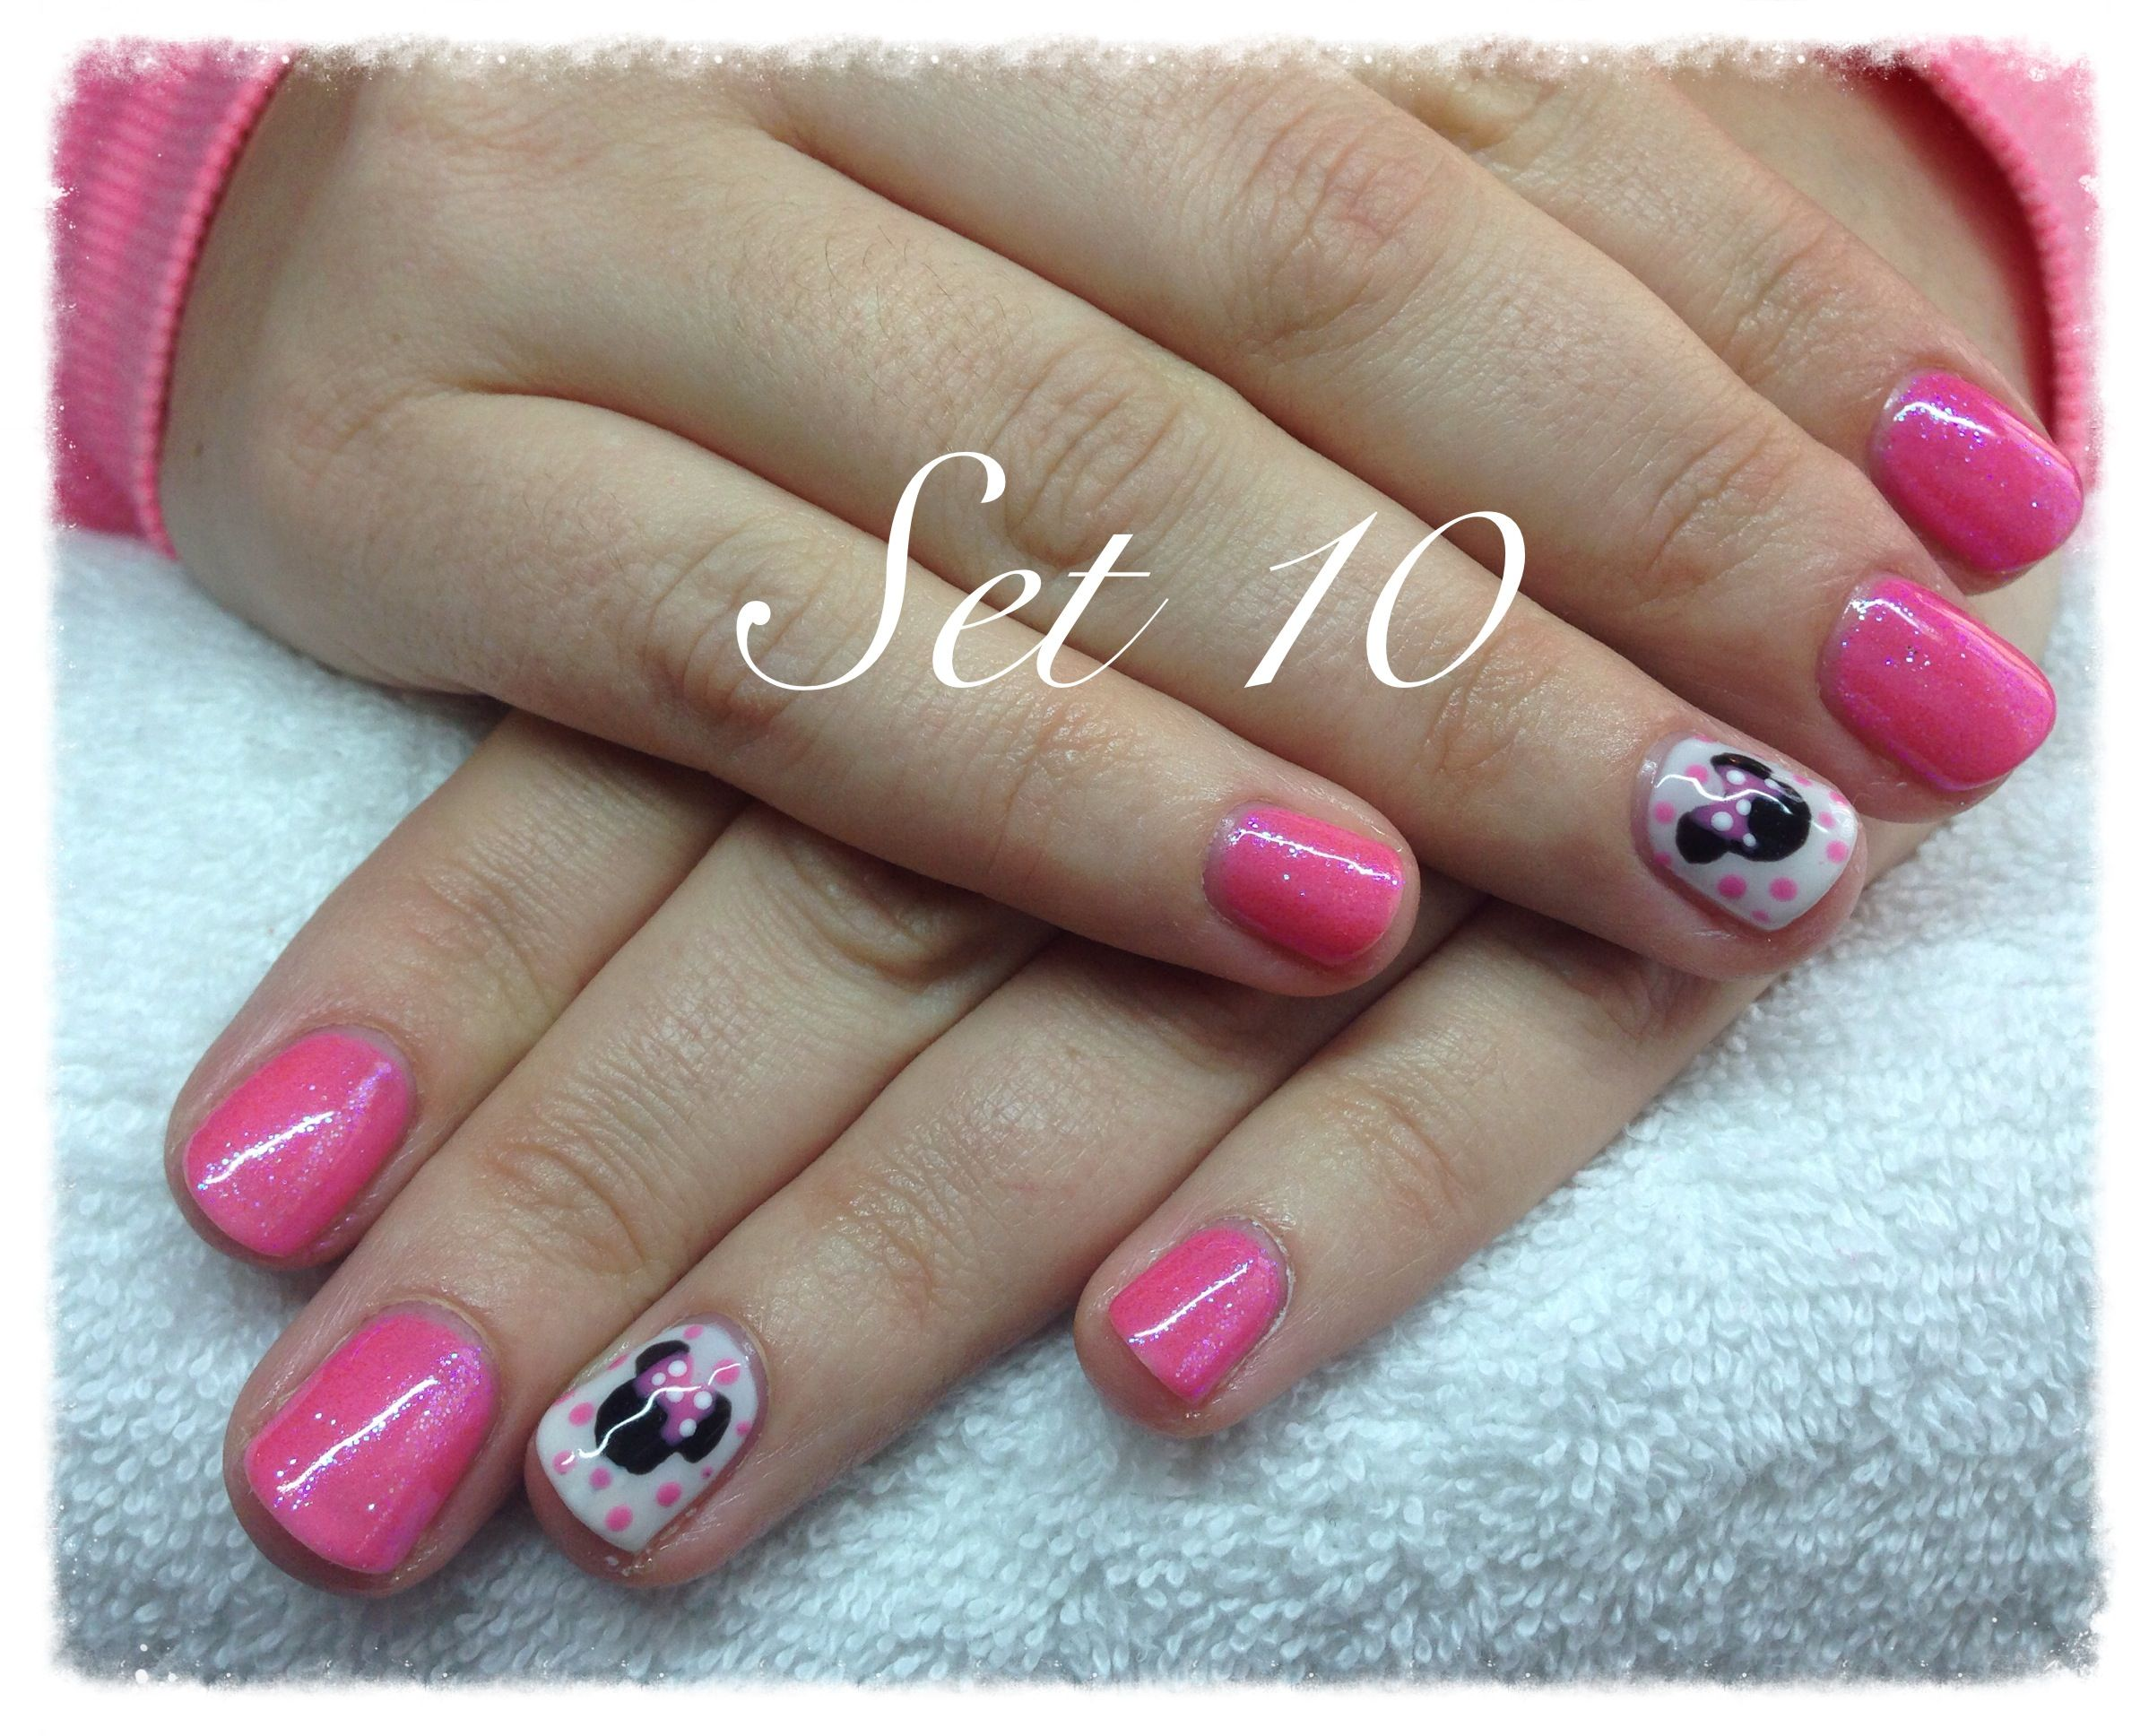 Minnie Mouse nails in gotcha with hot pink glitter | Nails ...